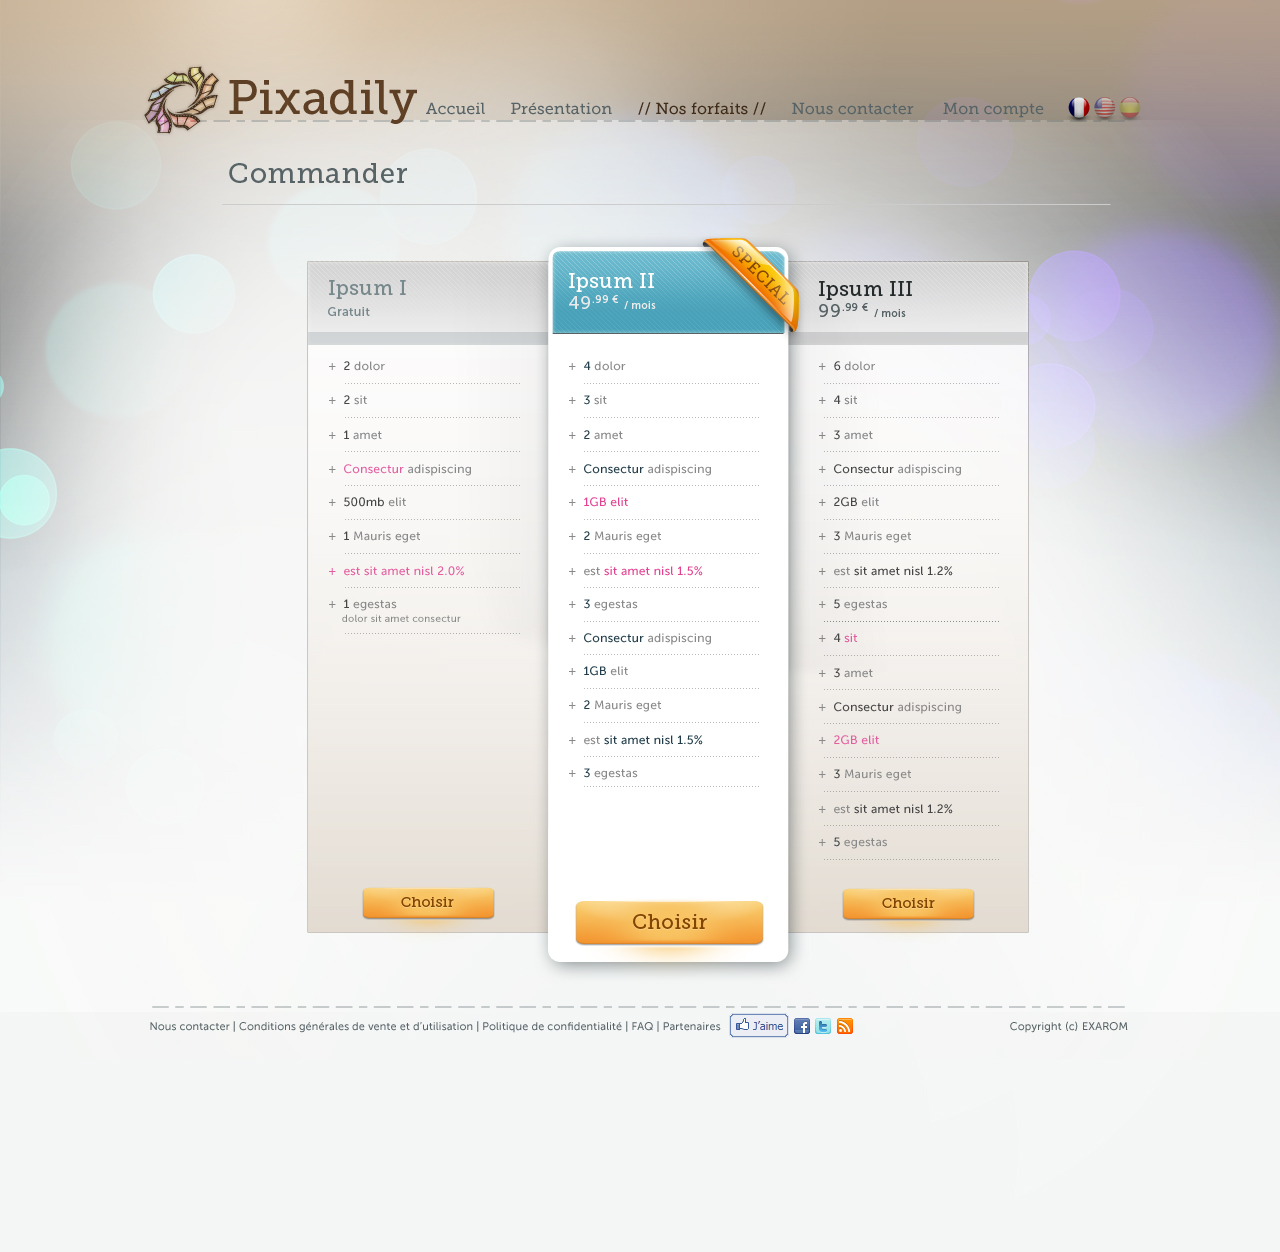 Pixadily - Pricing table - Details screenshot